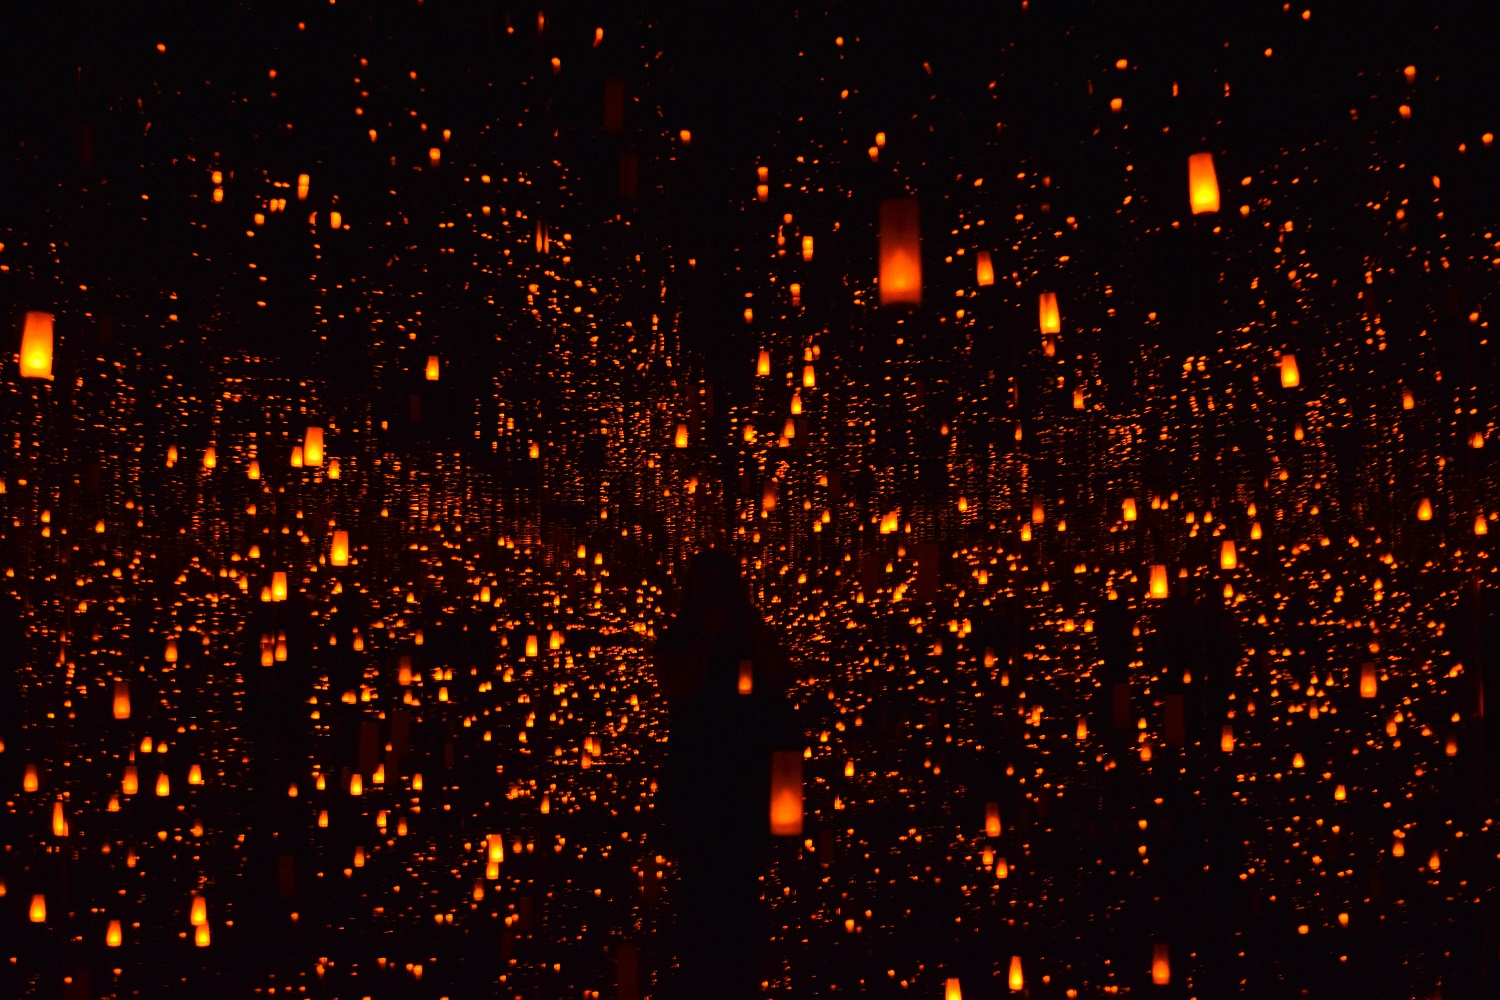 Aftermath of Obliteration of Eternity by Yayoi Kusama